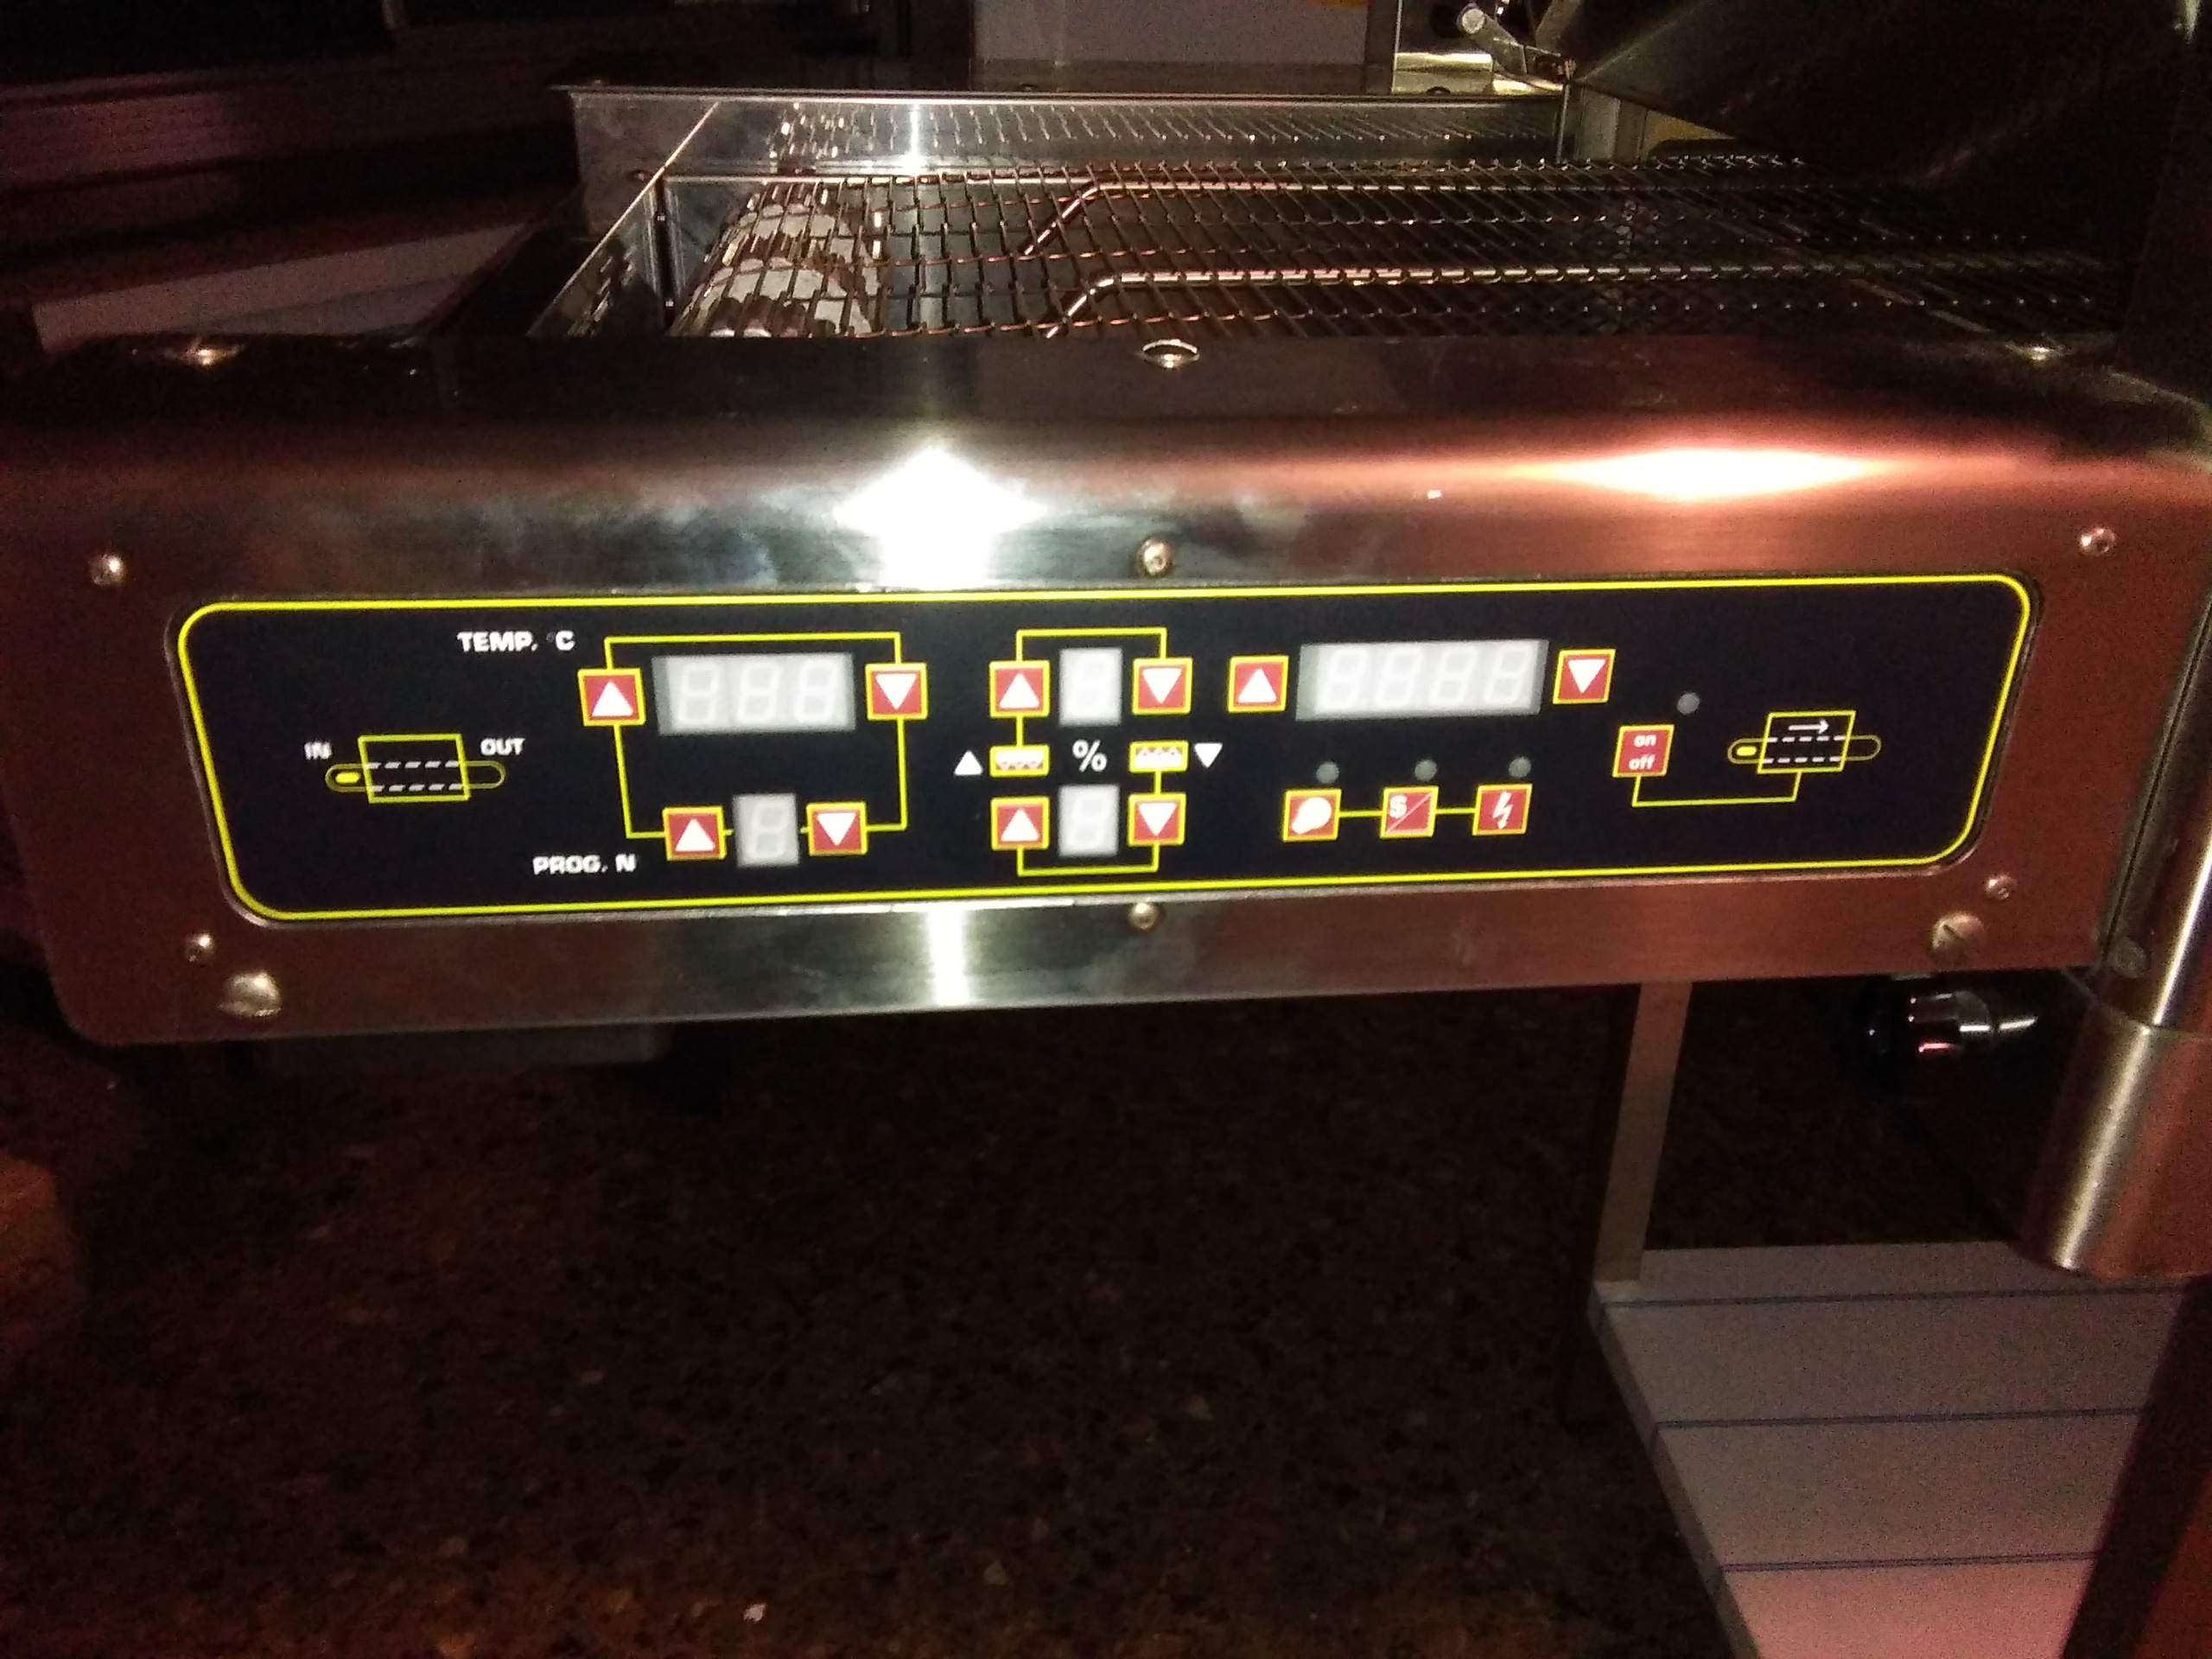 Tunnel de cuisson oem pizza tl 105 machines d 39 occasion for Machine de cuisson